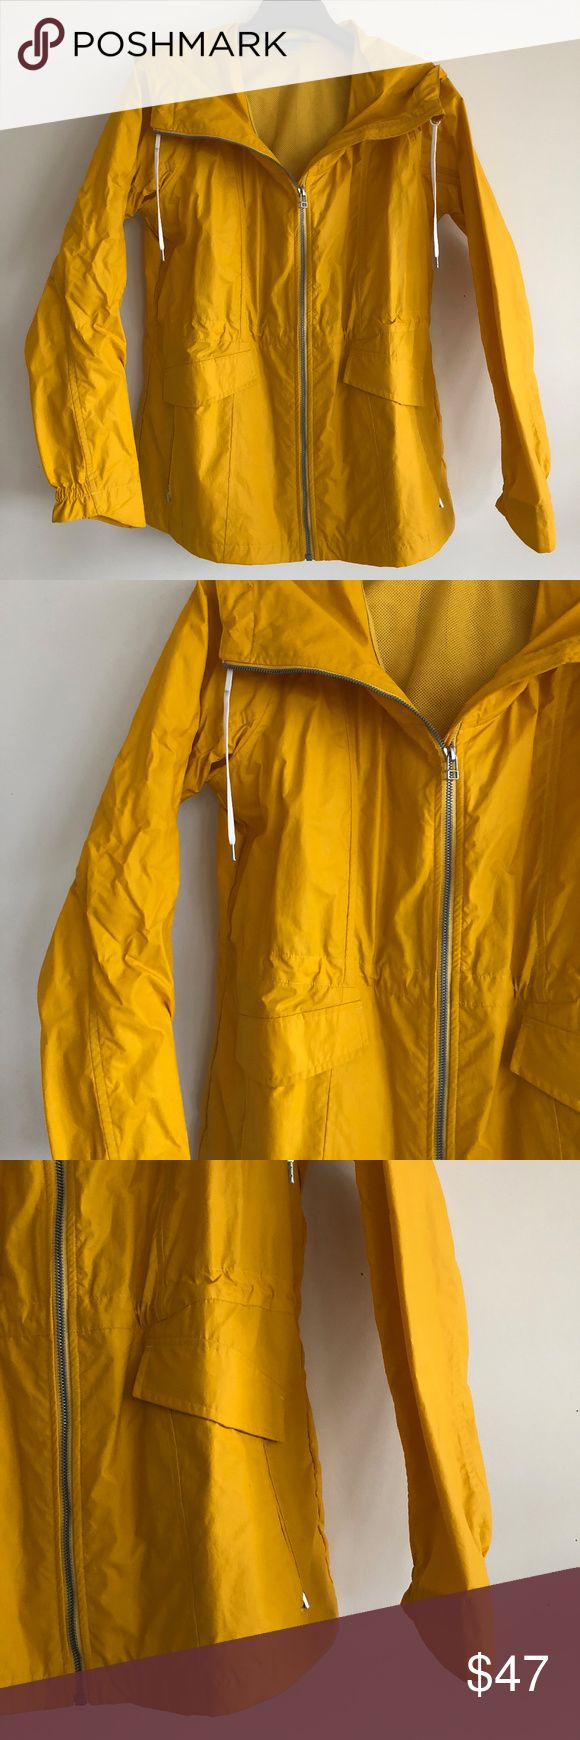 ATHLETA yellow rain parka ATHLETA yellow rain parka. Worn twice, cant even tell. Adjustable waist inside. 2 front pockets and inside pockets. White drawstring cord on hood. Athleta Jackets & Coats Utility Jackets